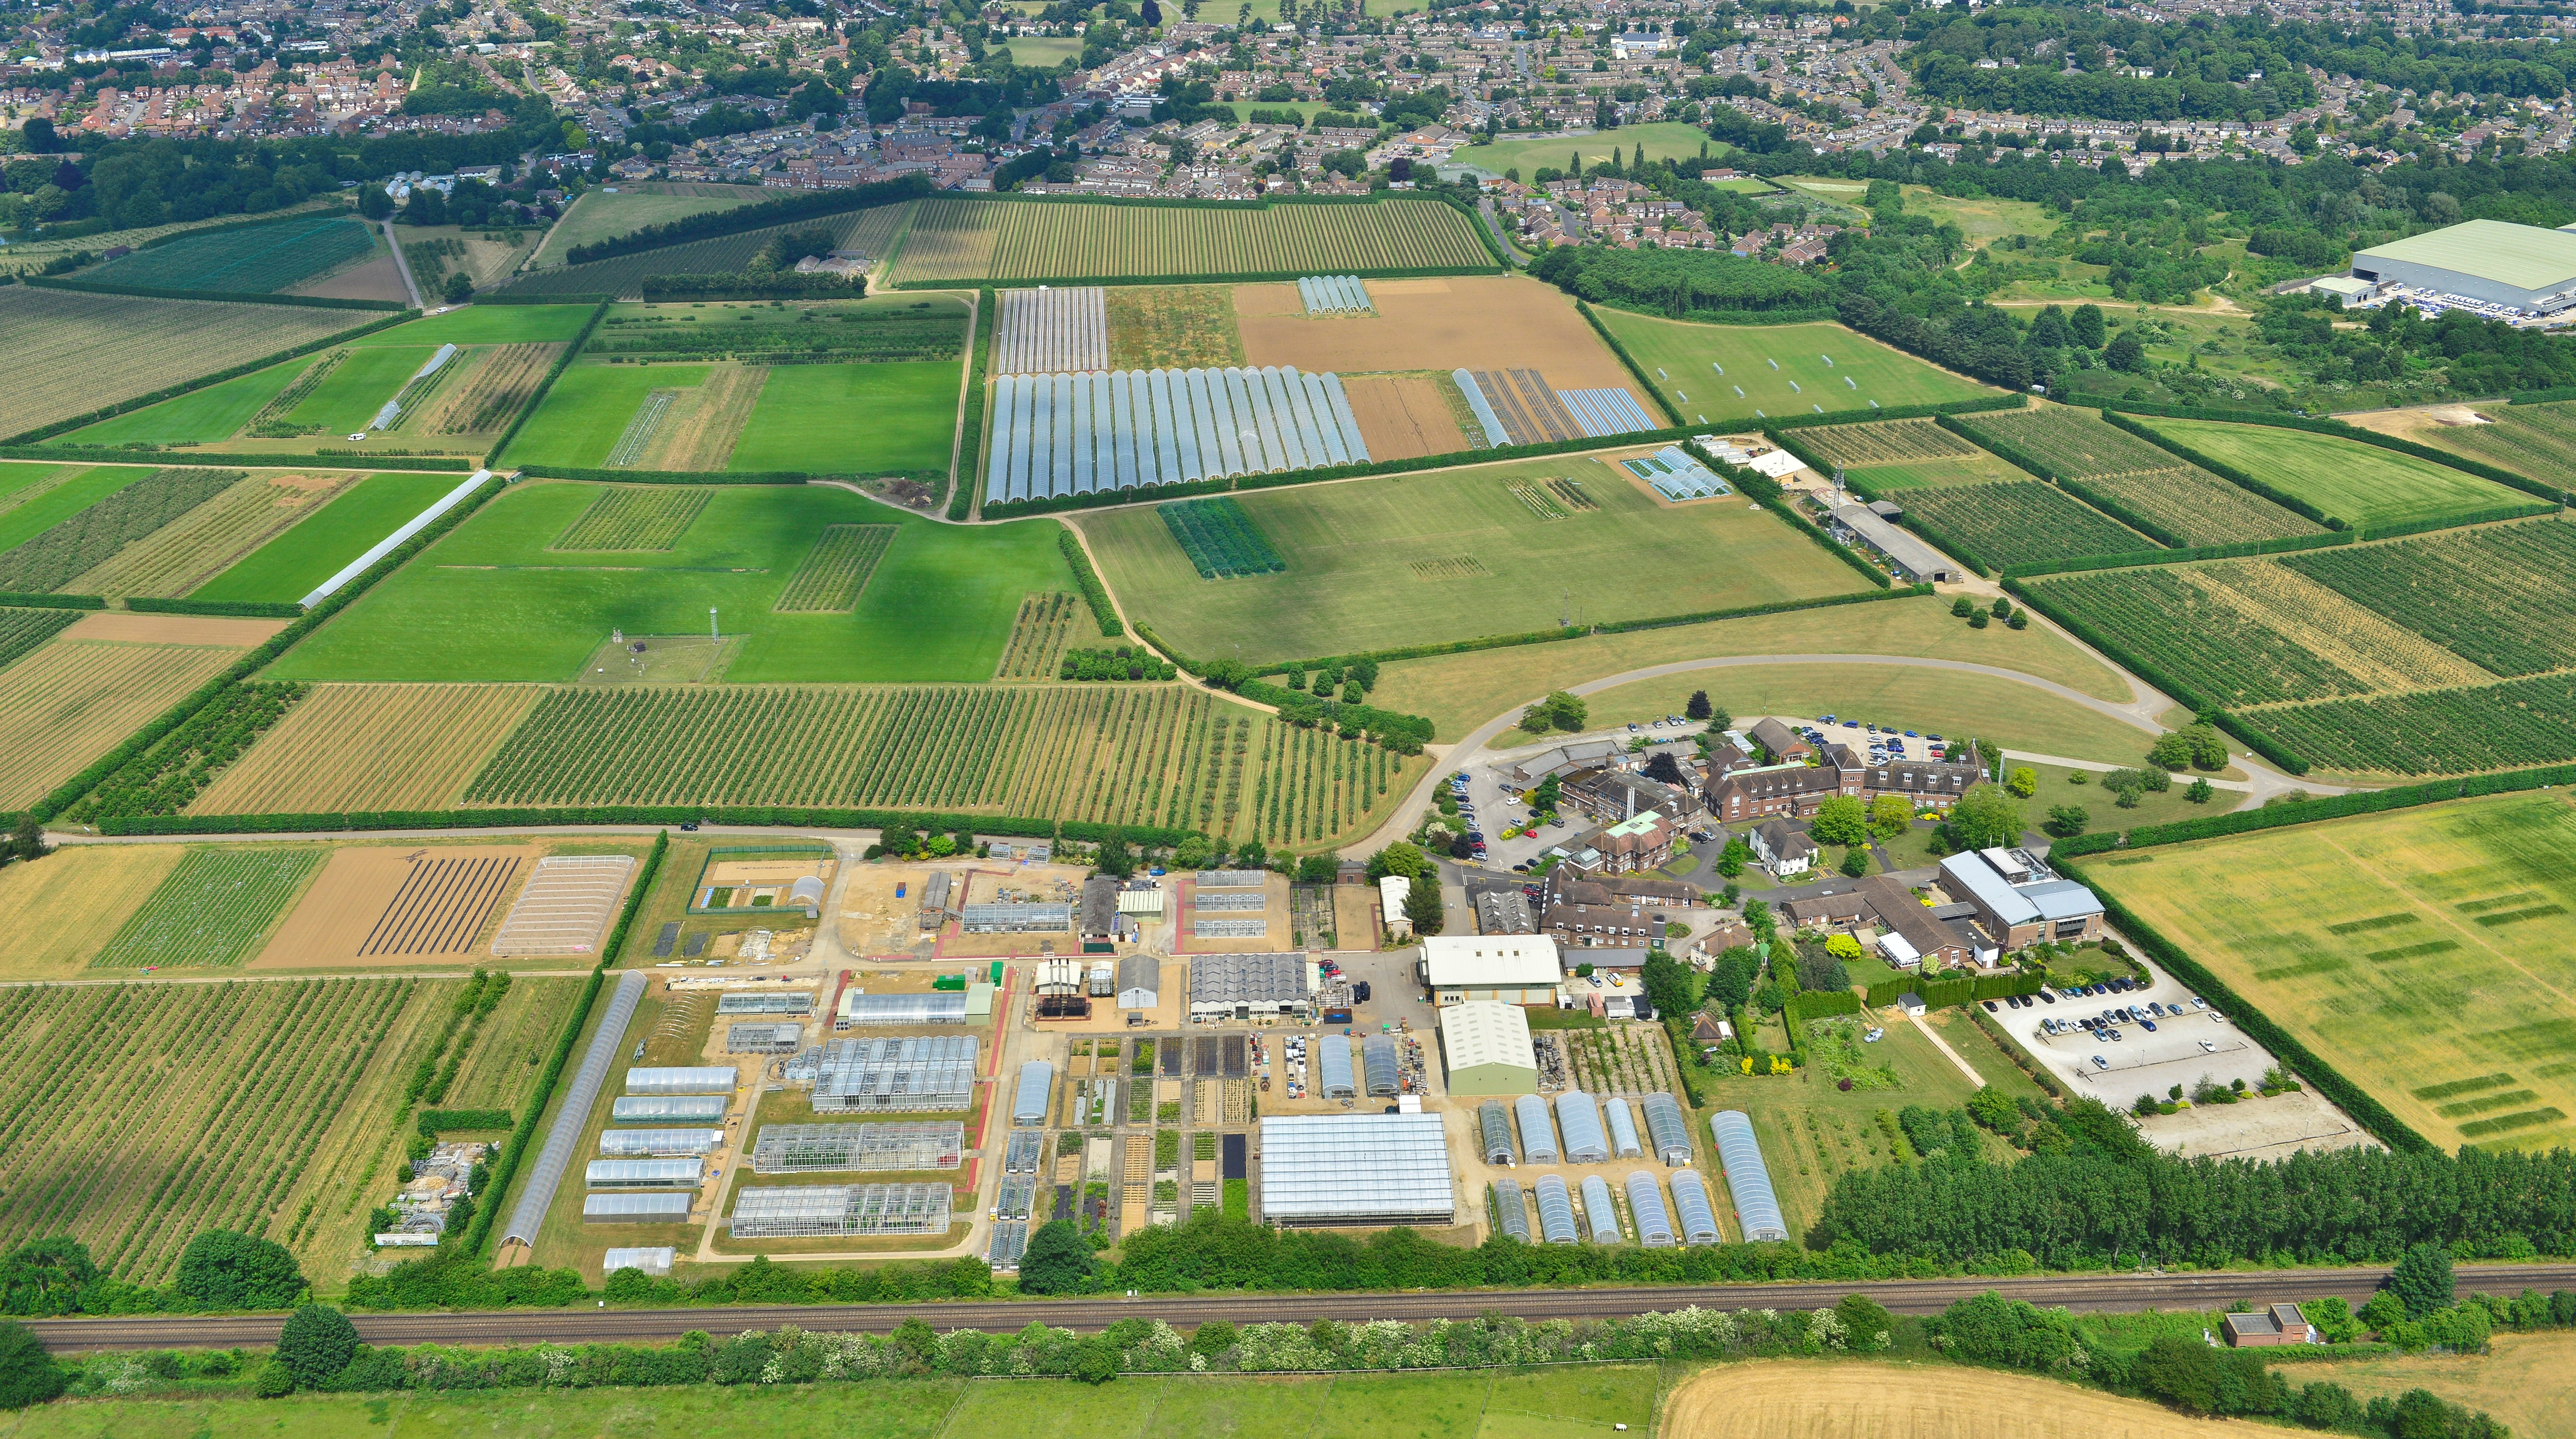 East Malling Research Campus